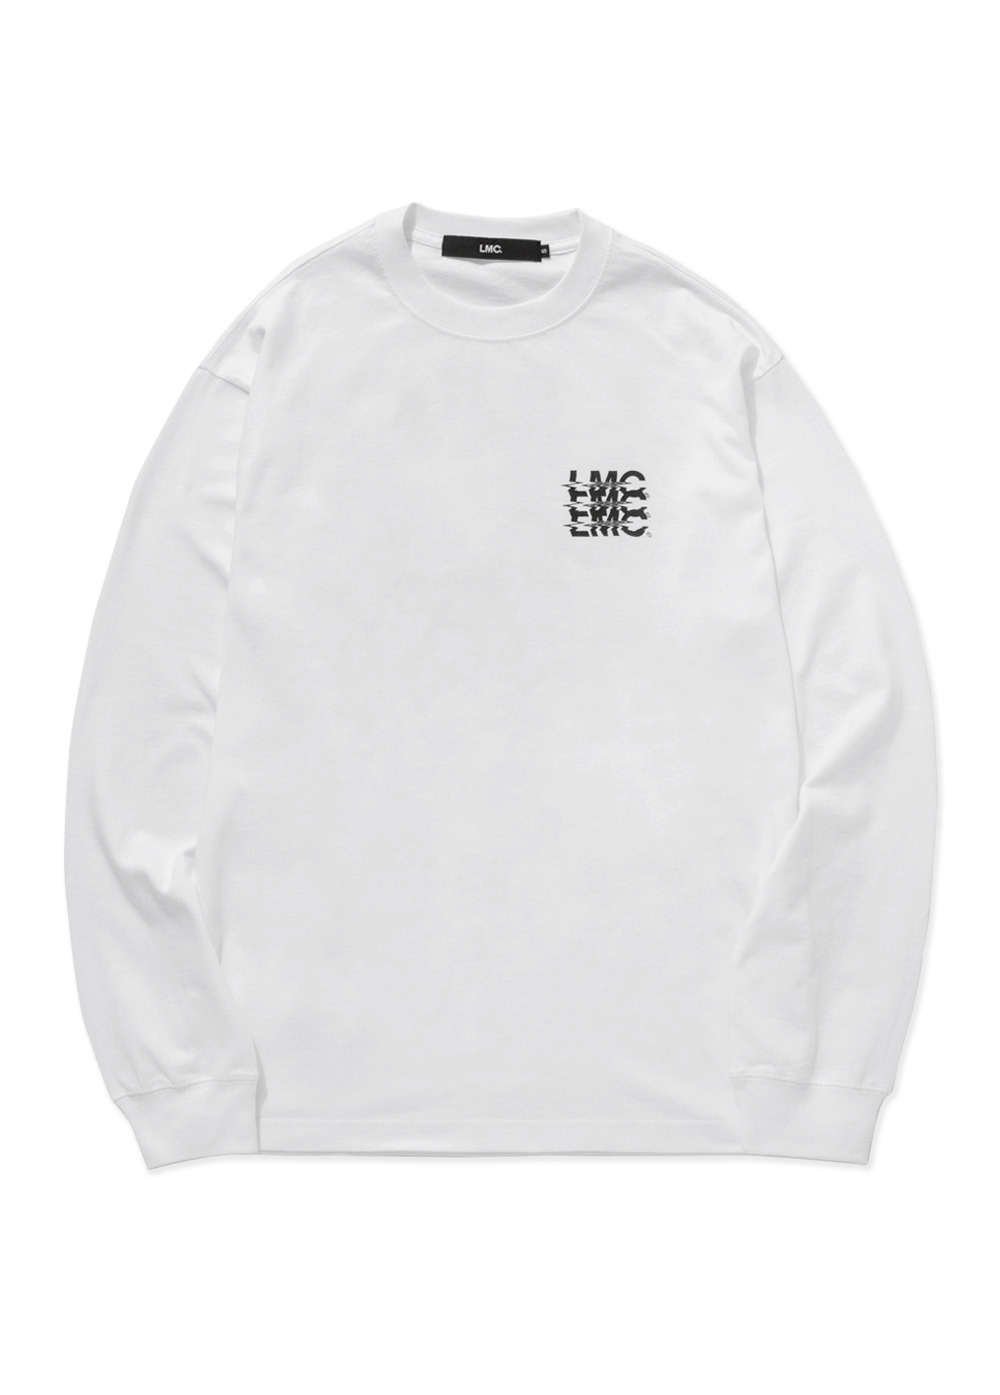 LMC NOISE LONG SLV TEE white